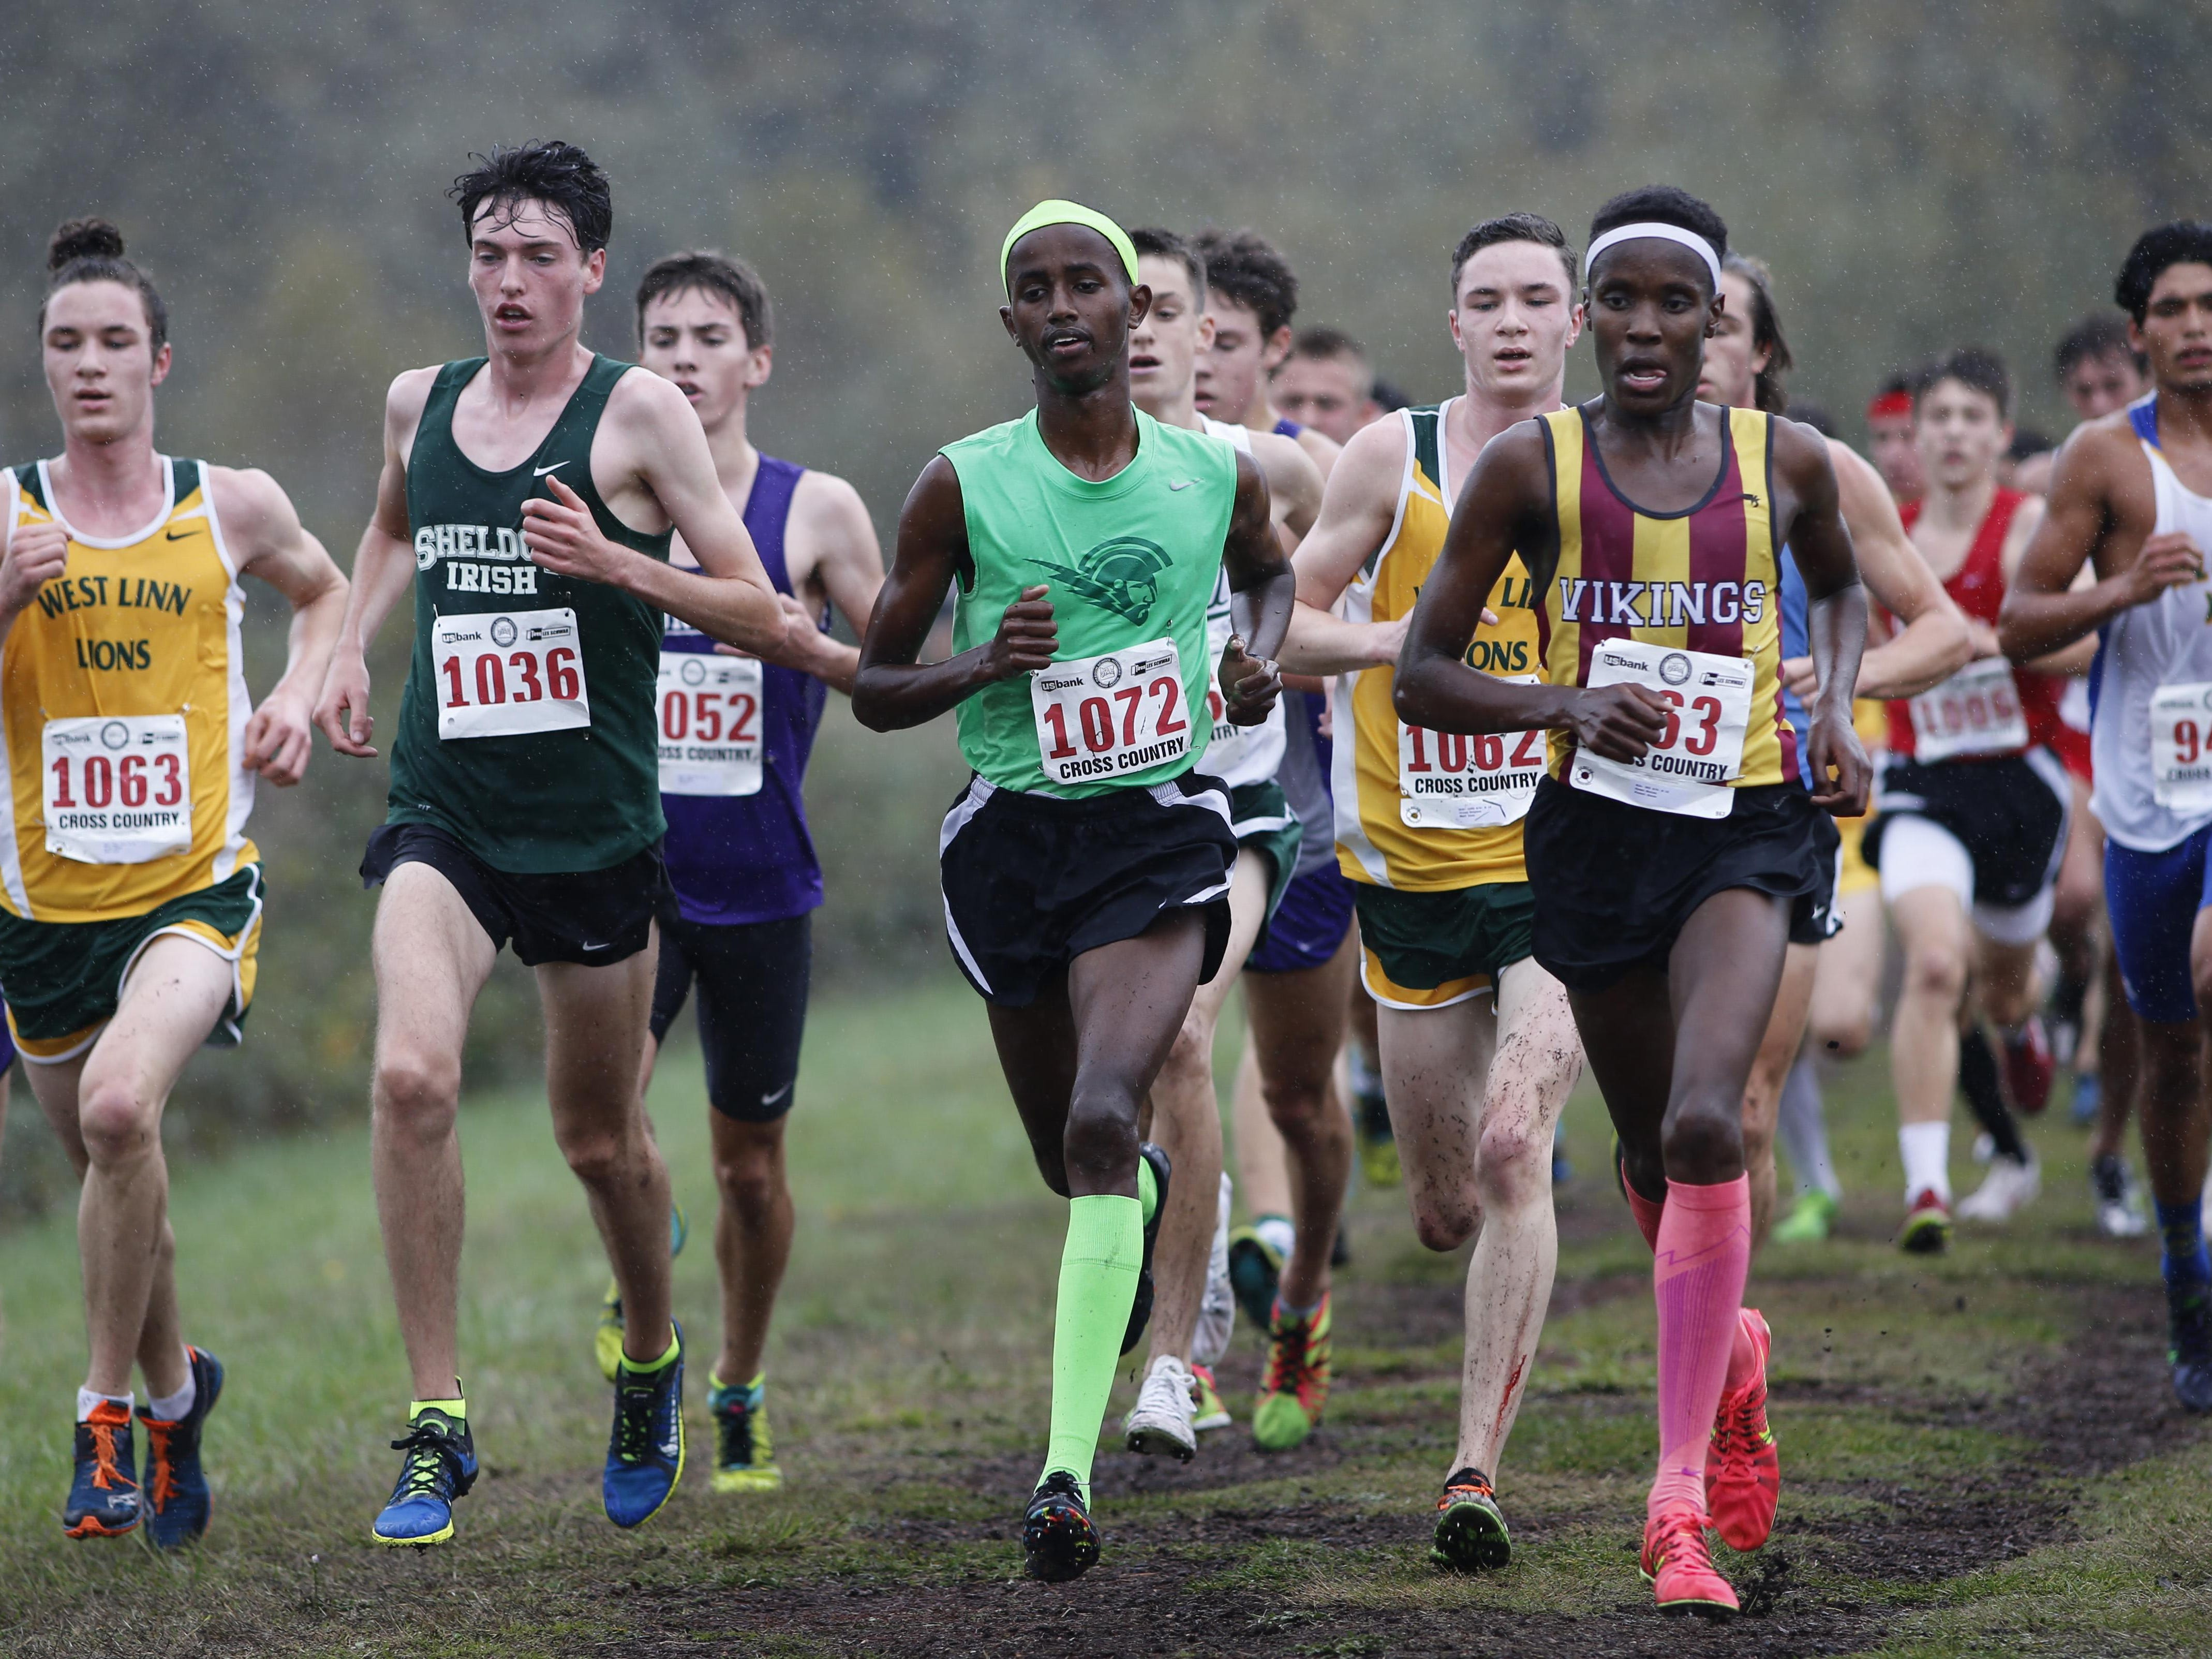 West Salem's Ahmed Muhumed, center, runs in the lead pack in the 6A state cross country championships at Lane Community College on Saturday, Oct. 31, 2015. Muhumed won the state championship. (Timothy J. Gonzalez/For the Statesman Journal)